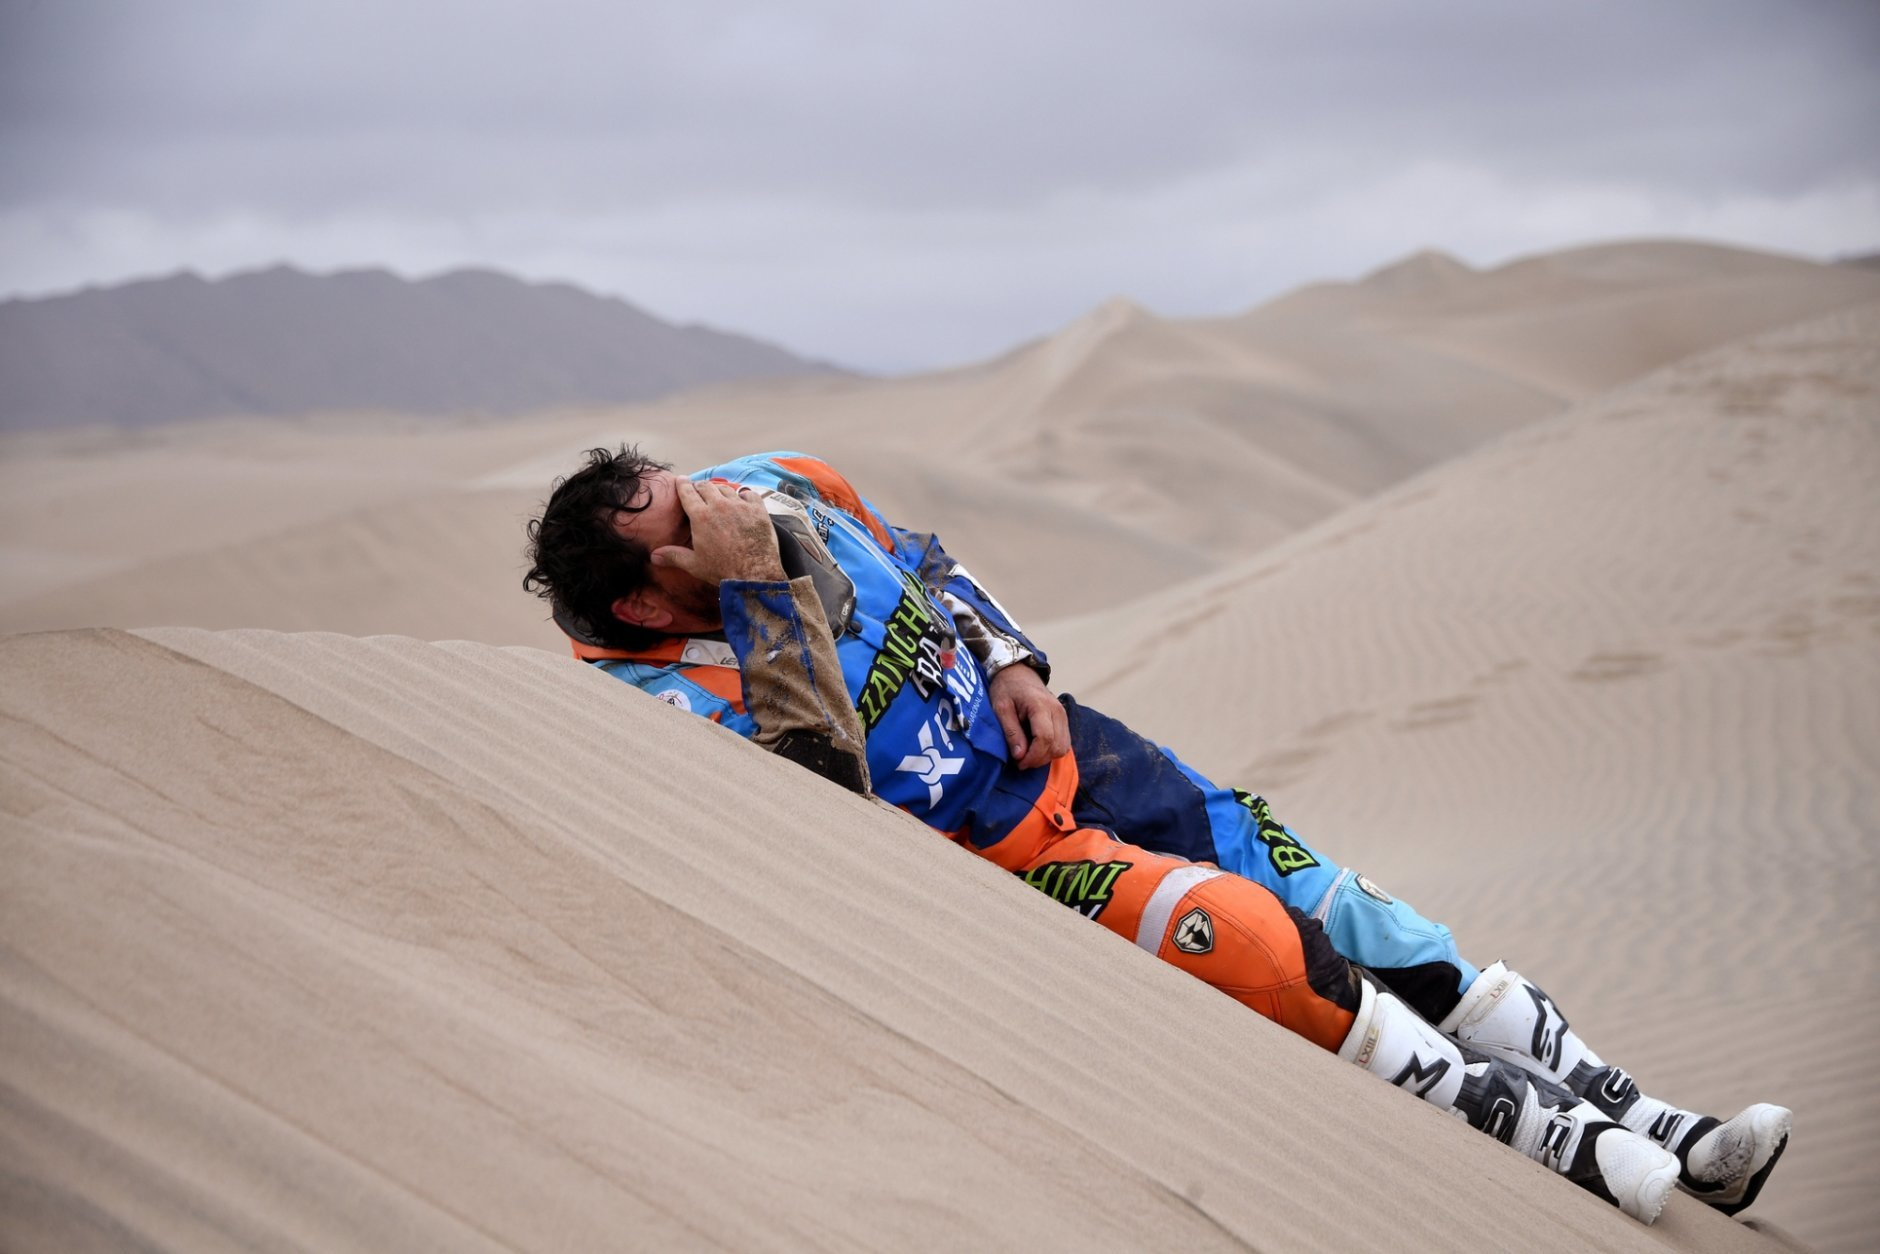 Marcos Colvero of Brazil lies on the dunes after he crashed on his KTM motorbike during the third stage of the Dakar Rally between San Juan de Marcona and Arequipa, Peru, Wednesday, Jan. 9, 2019. (Franck Fife/Pool Photo via AP)